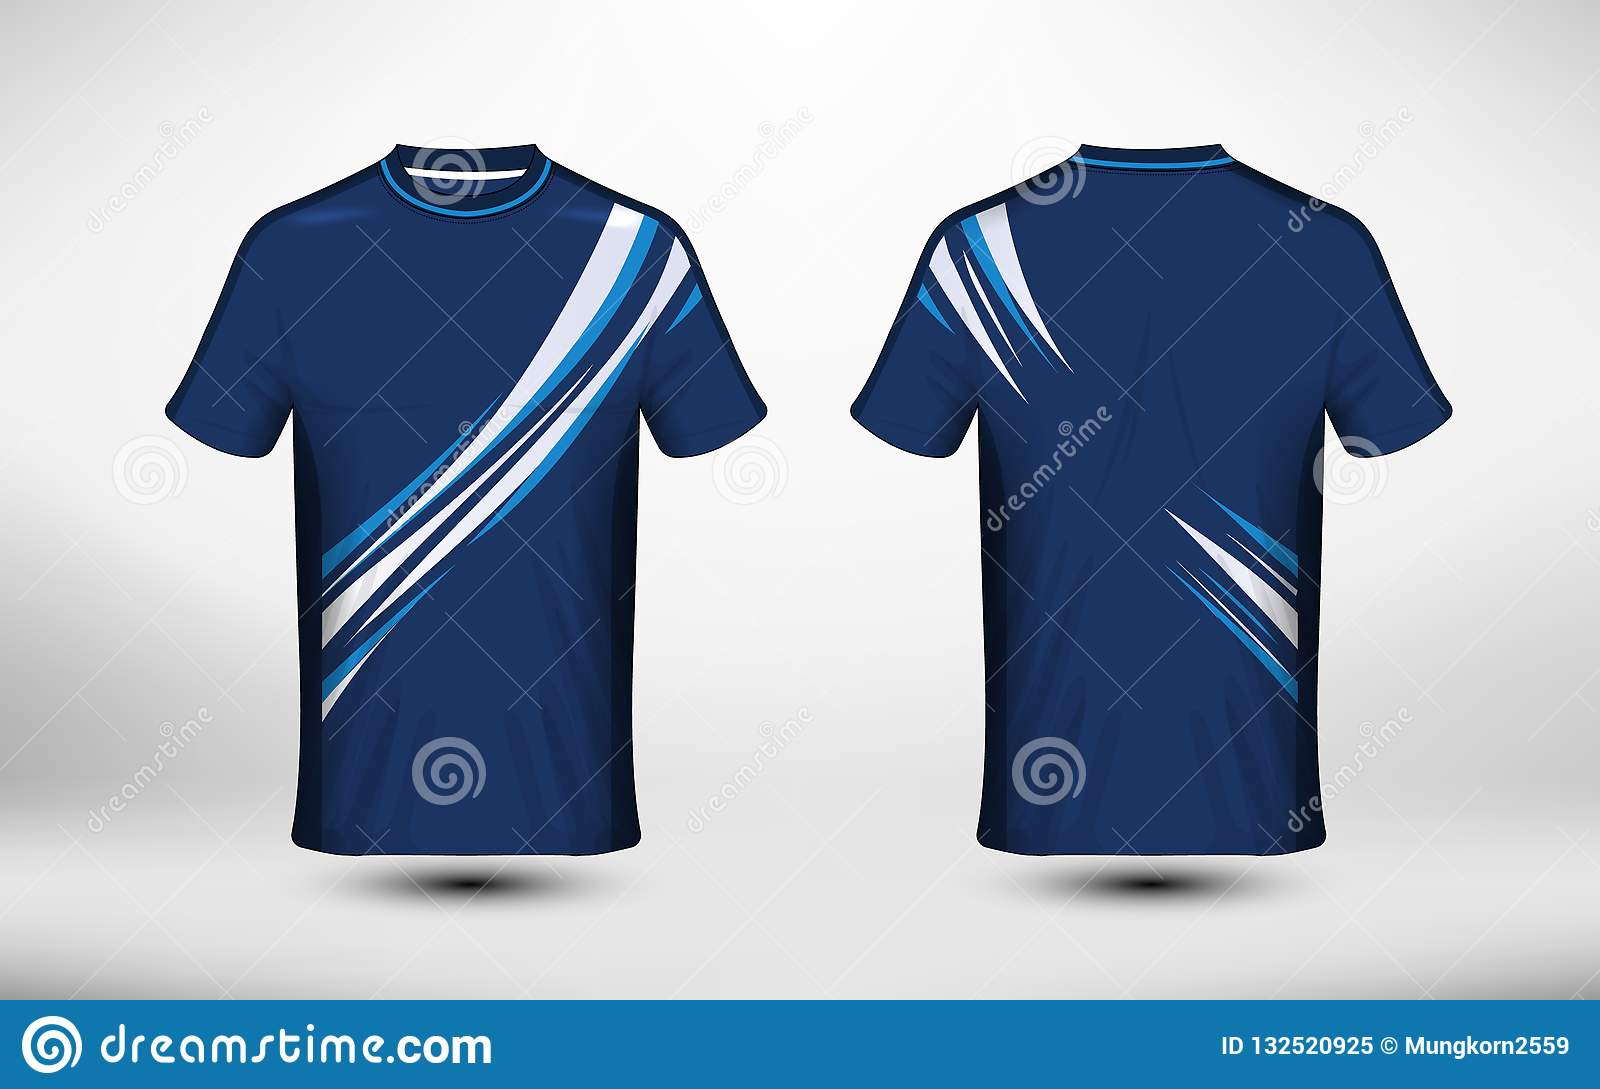 9dc62c9b3 Blue And White Layout E-sport T-shirt Design Template Stock Vector ...